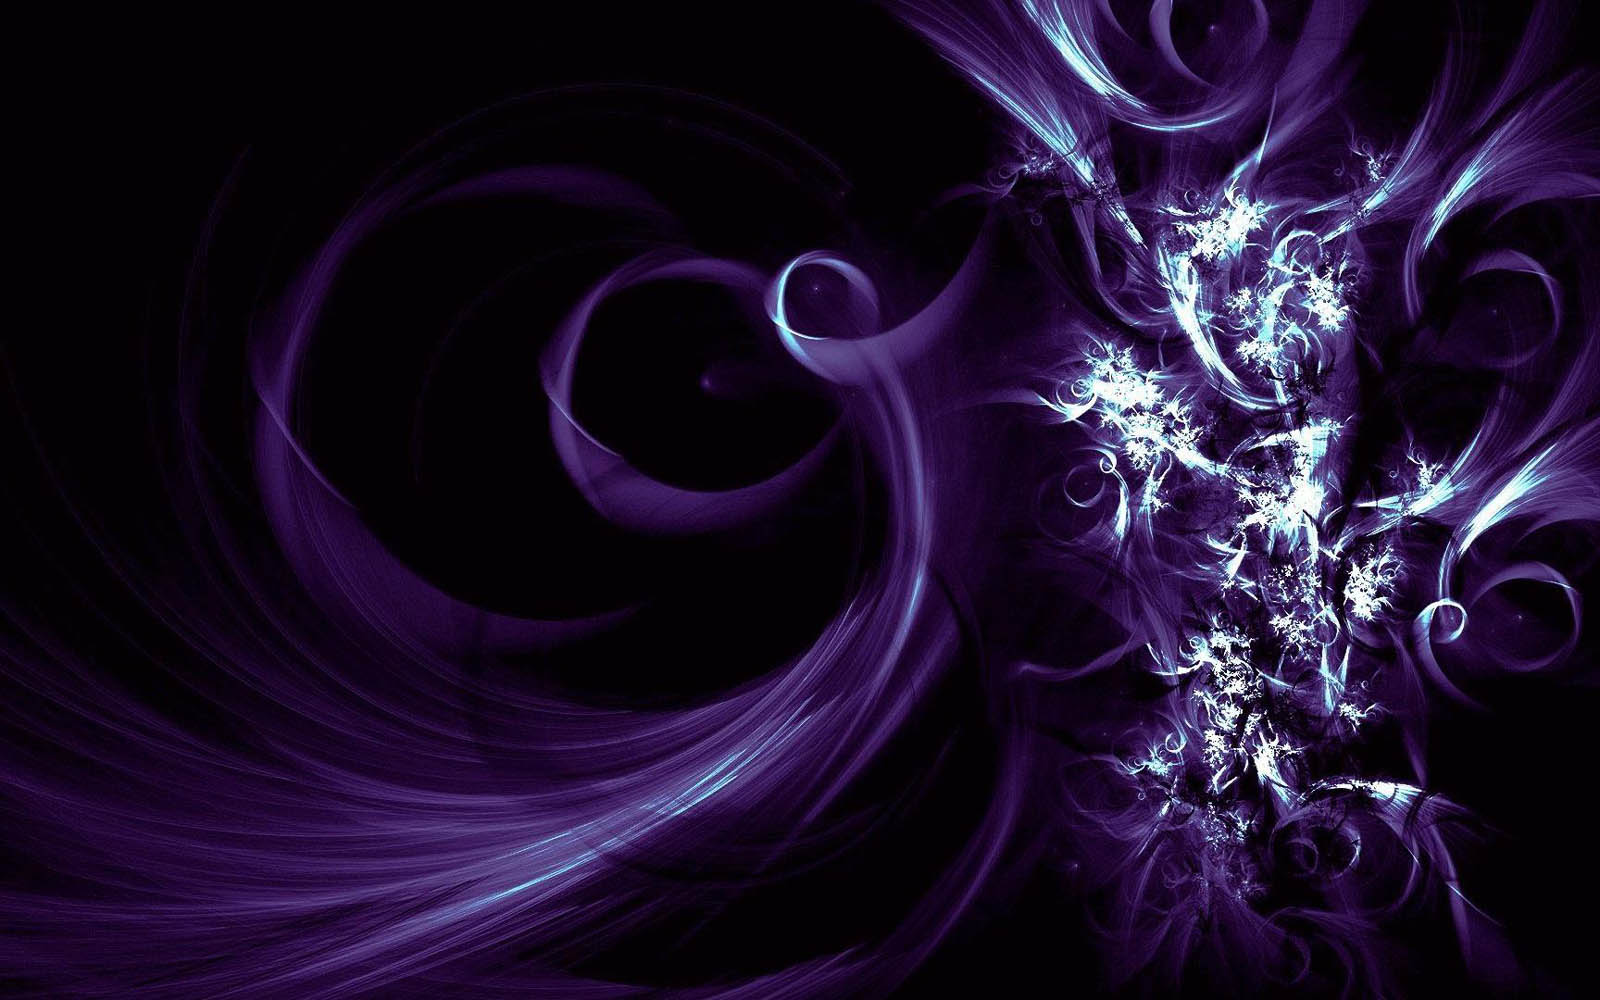 Gambar Purple and Black Abstract